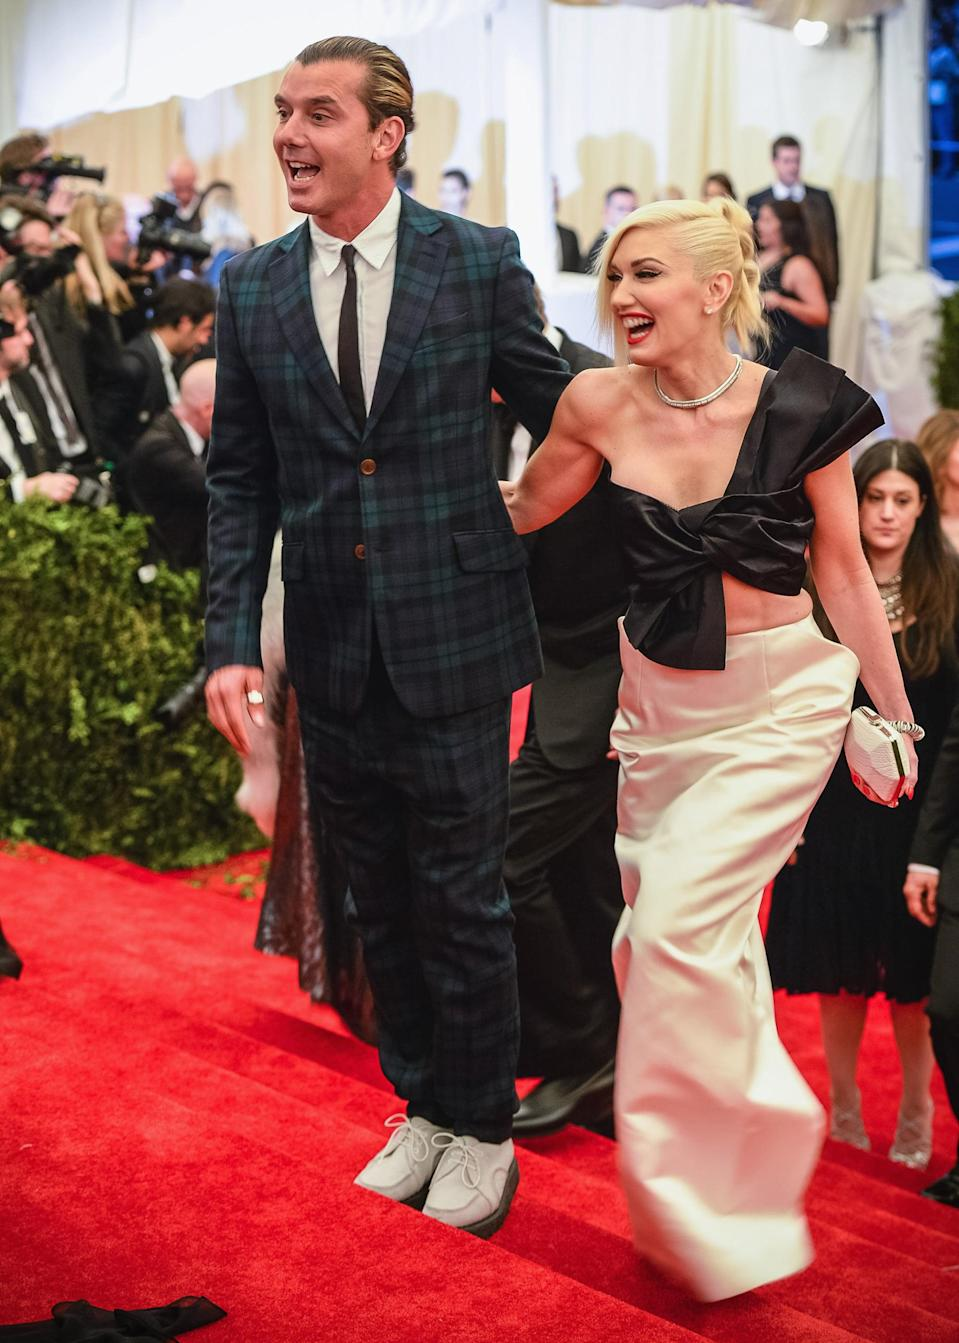 """<p>The theme for the 2013 Met Gala """"PUNK: Chaos to Couture"""" was right up Gwen's alley. While Rossdale wore a plaid suit and platform brogues, Gwen stood by his side making a statement in this Maison Martin Margiela number.</p>"""